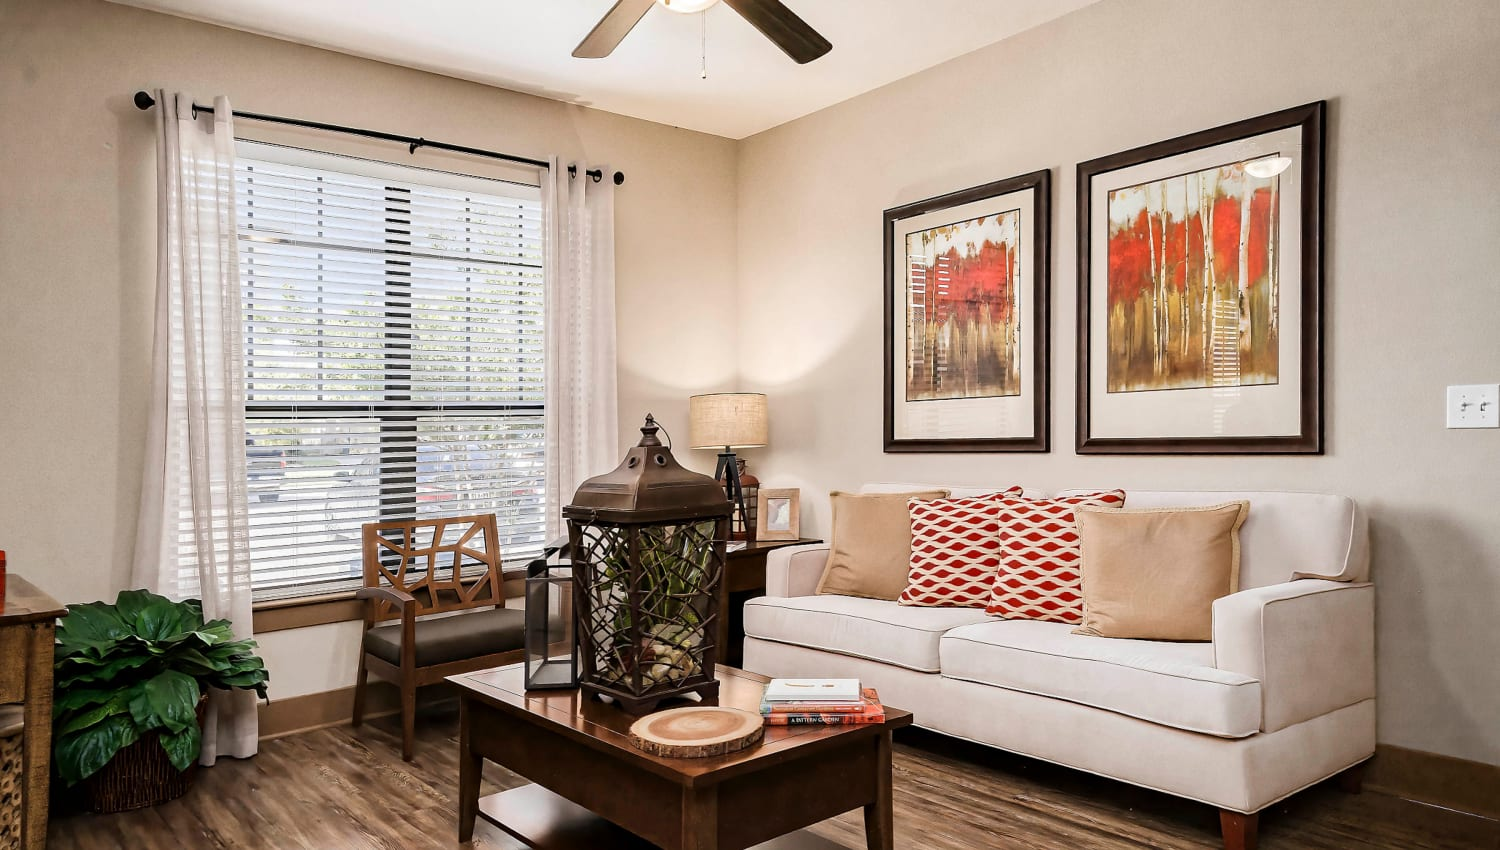 Classic furnishings and a ceiling fan in a model home's living area at Sedona Ranch in Odessa, Texas